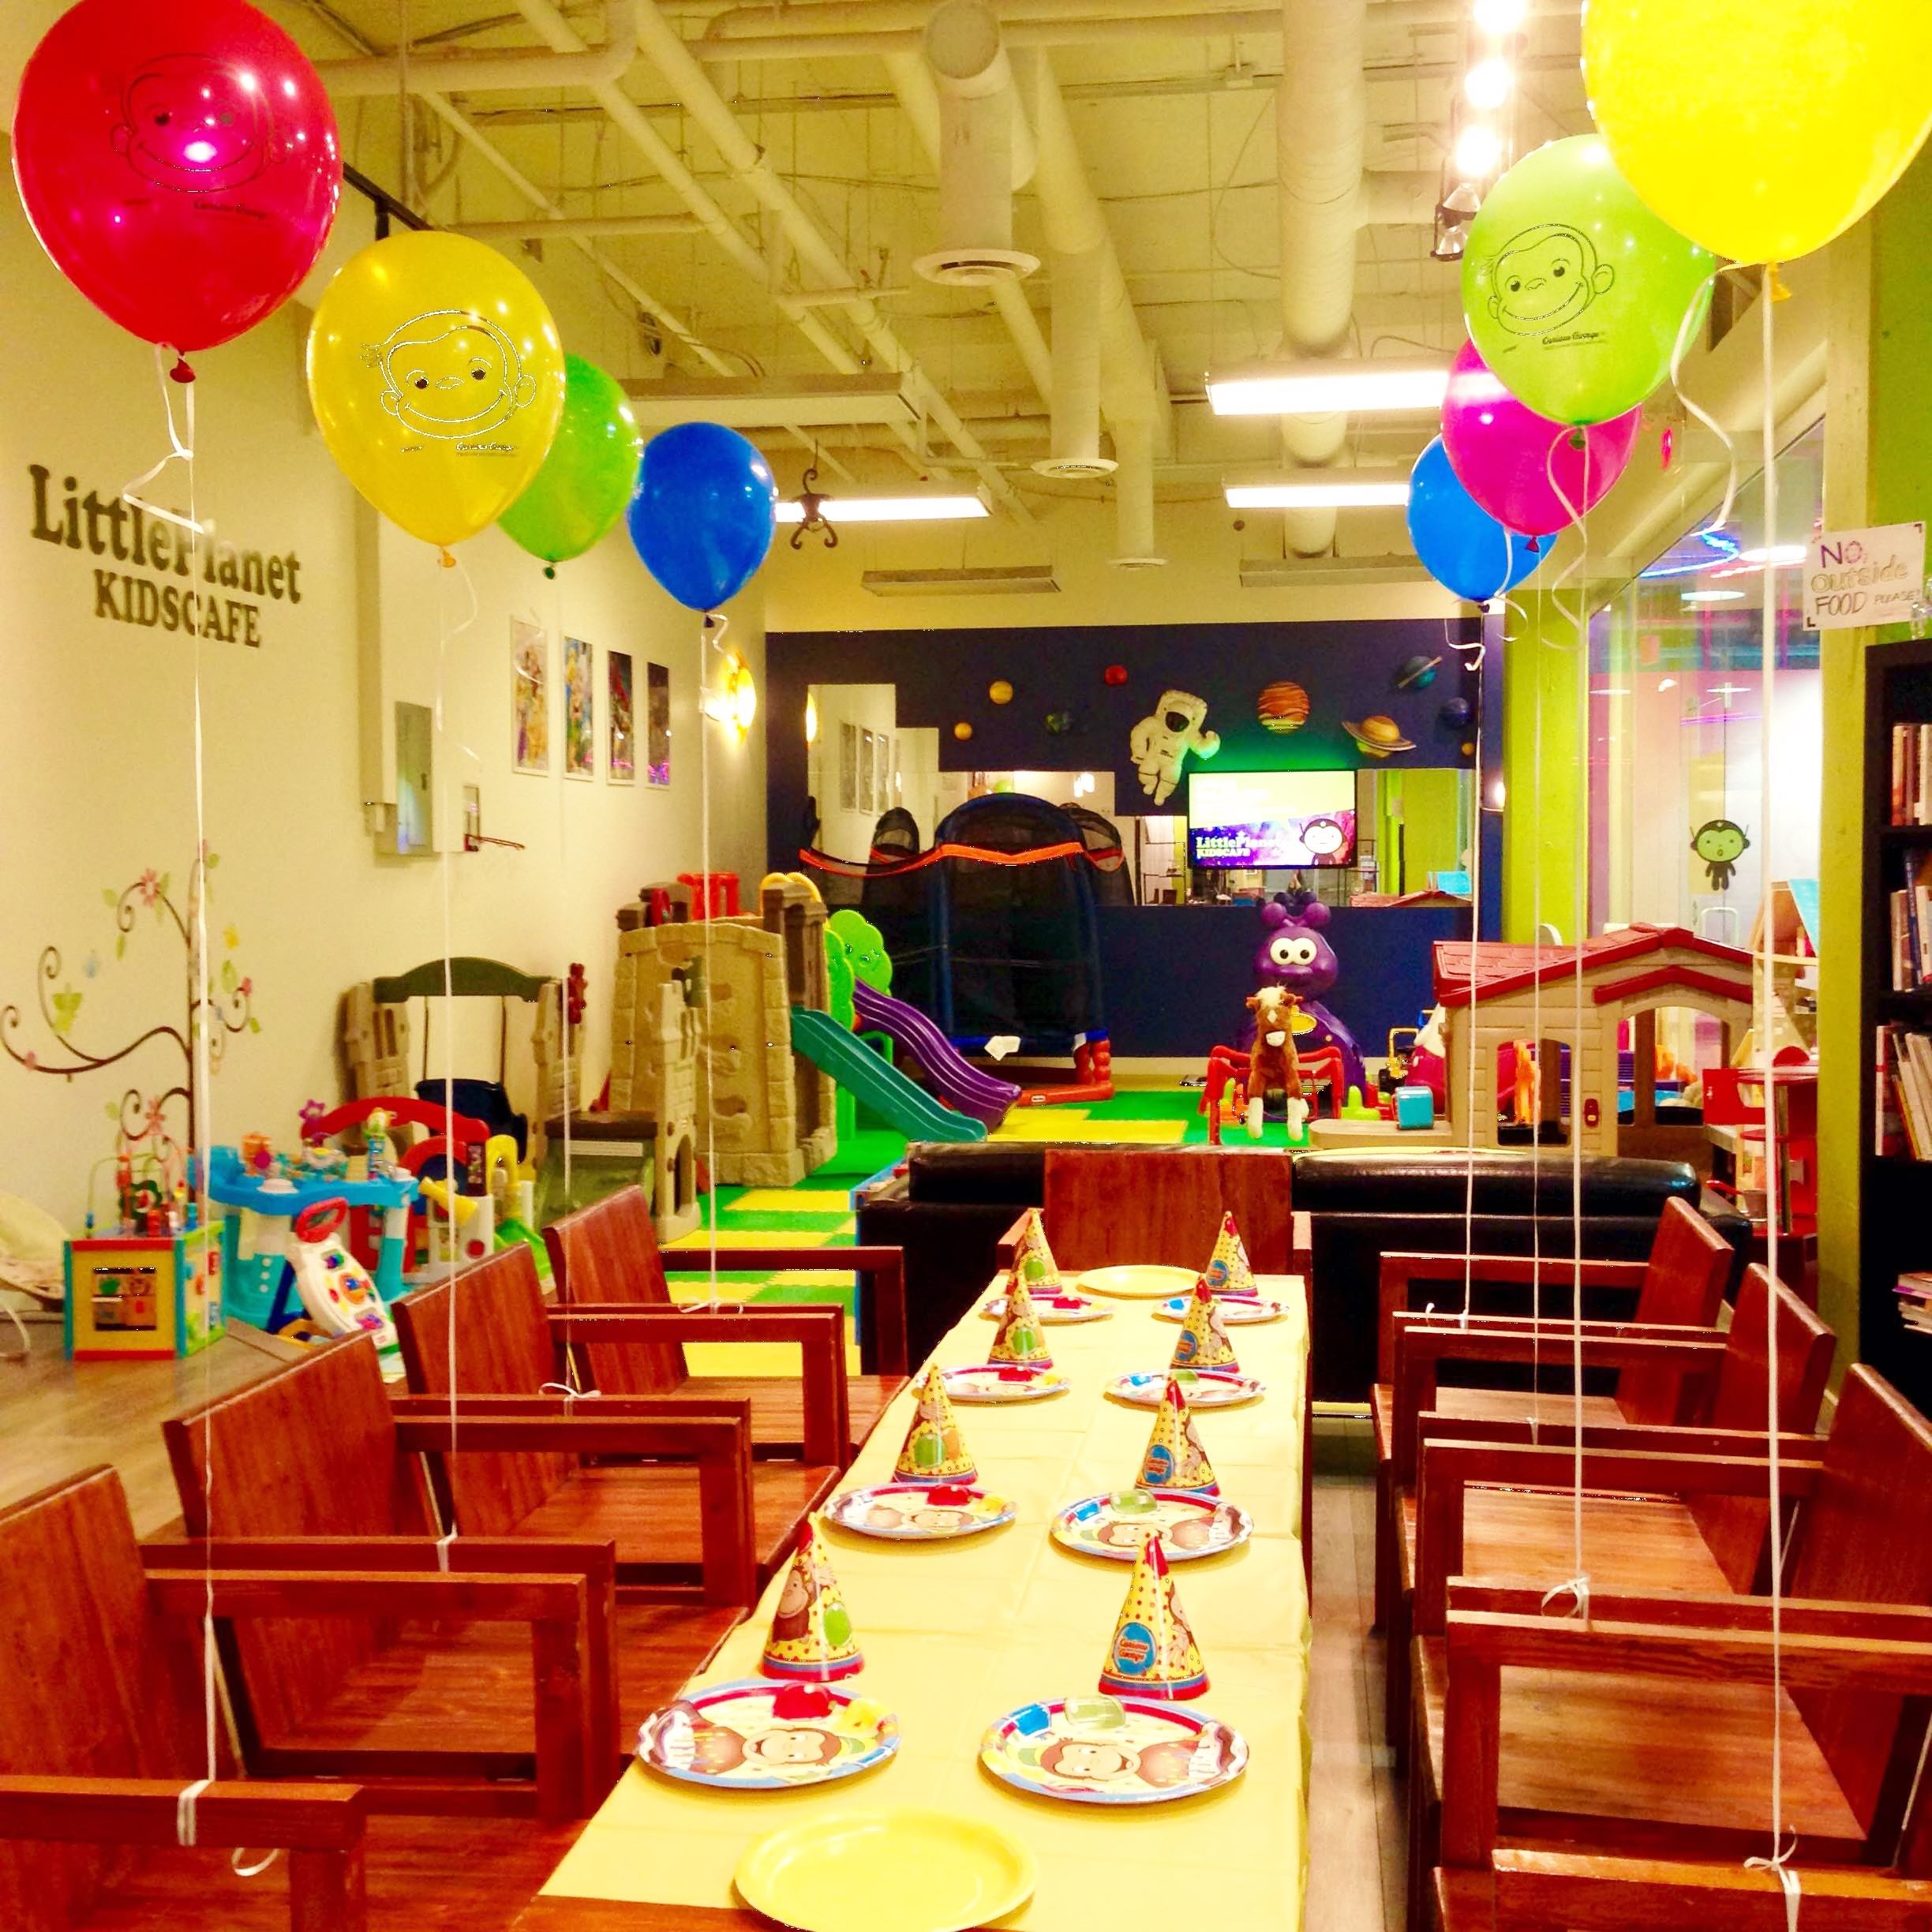 Little Planet Kids Cafe In Coquitlam, Bc